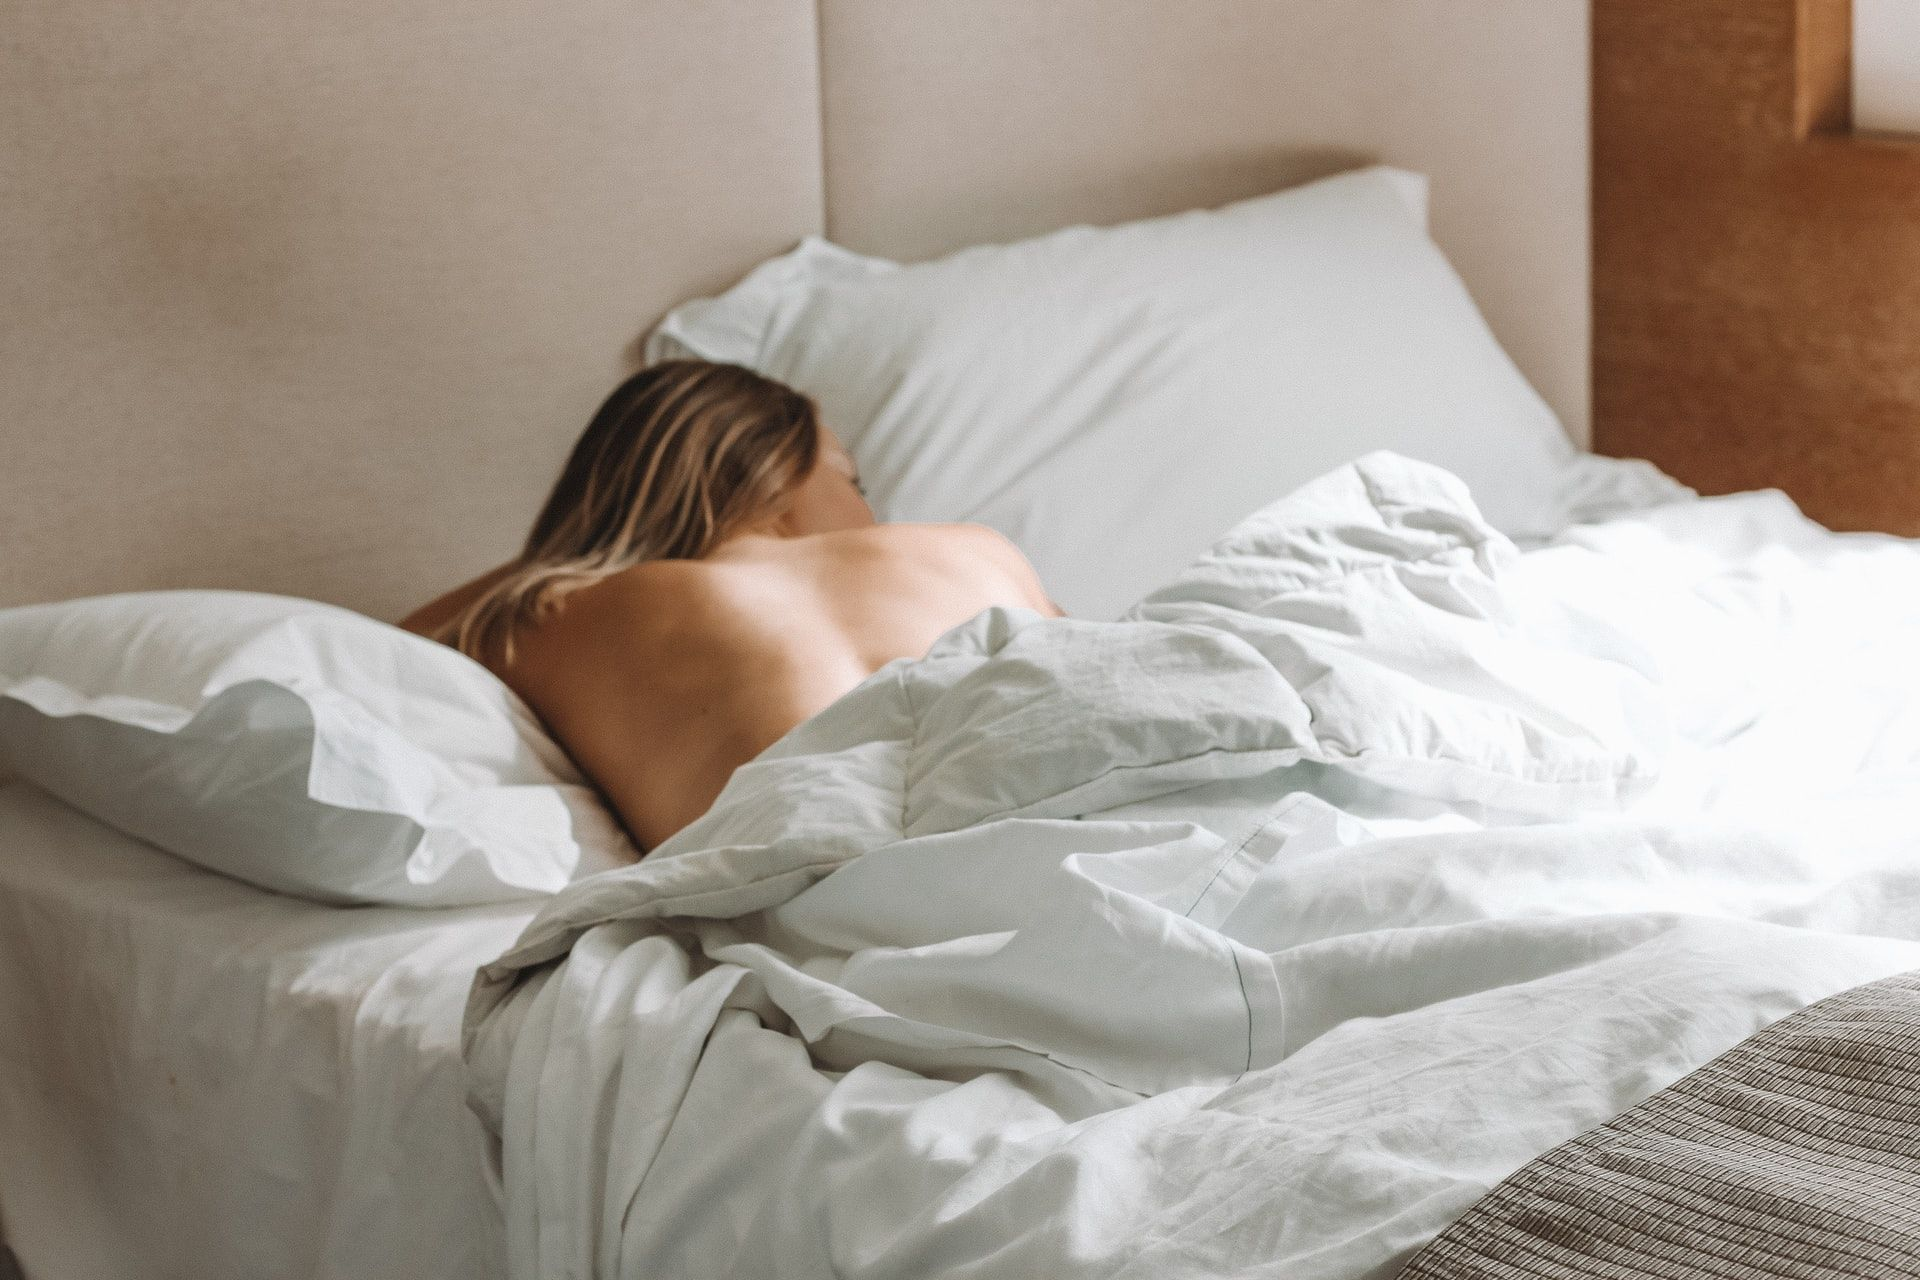 woman on bed naked back